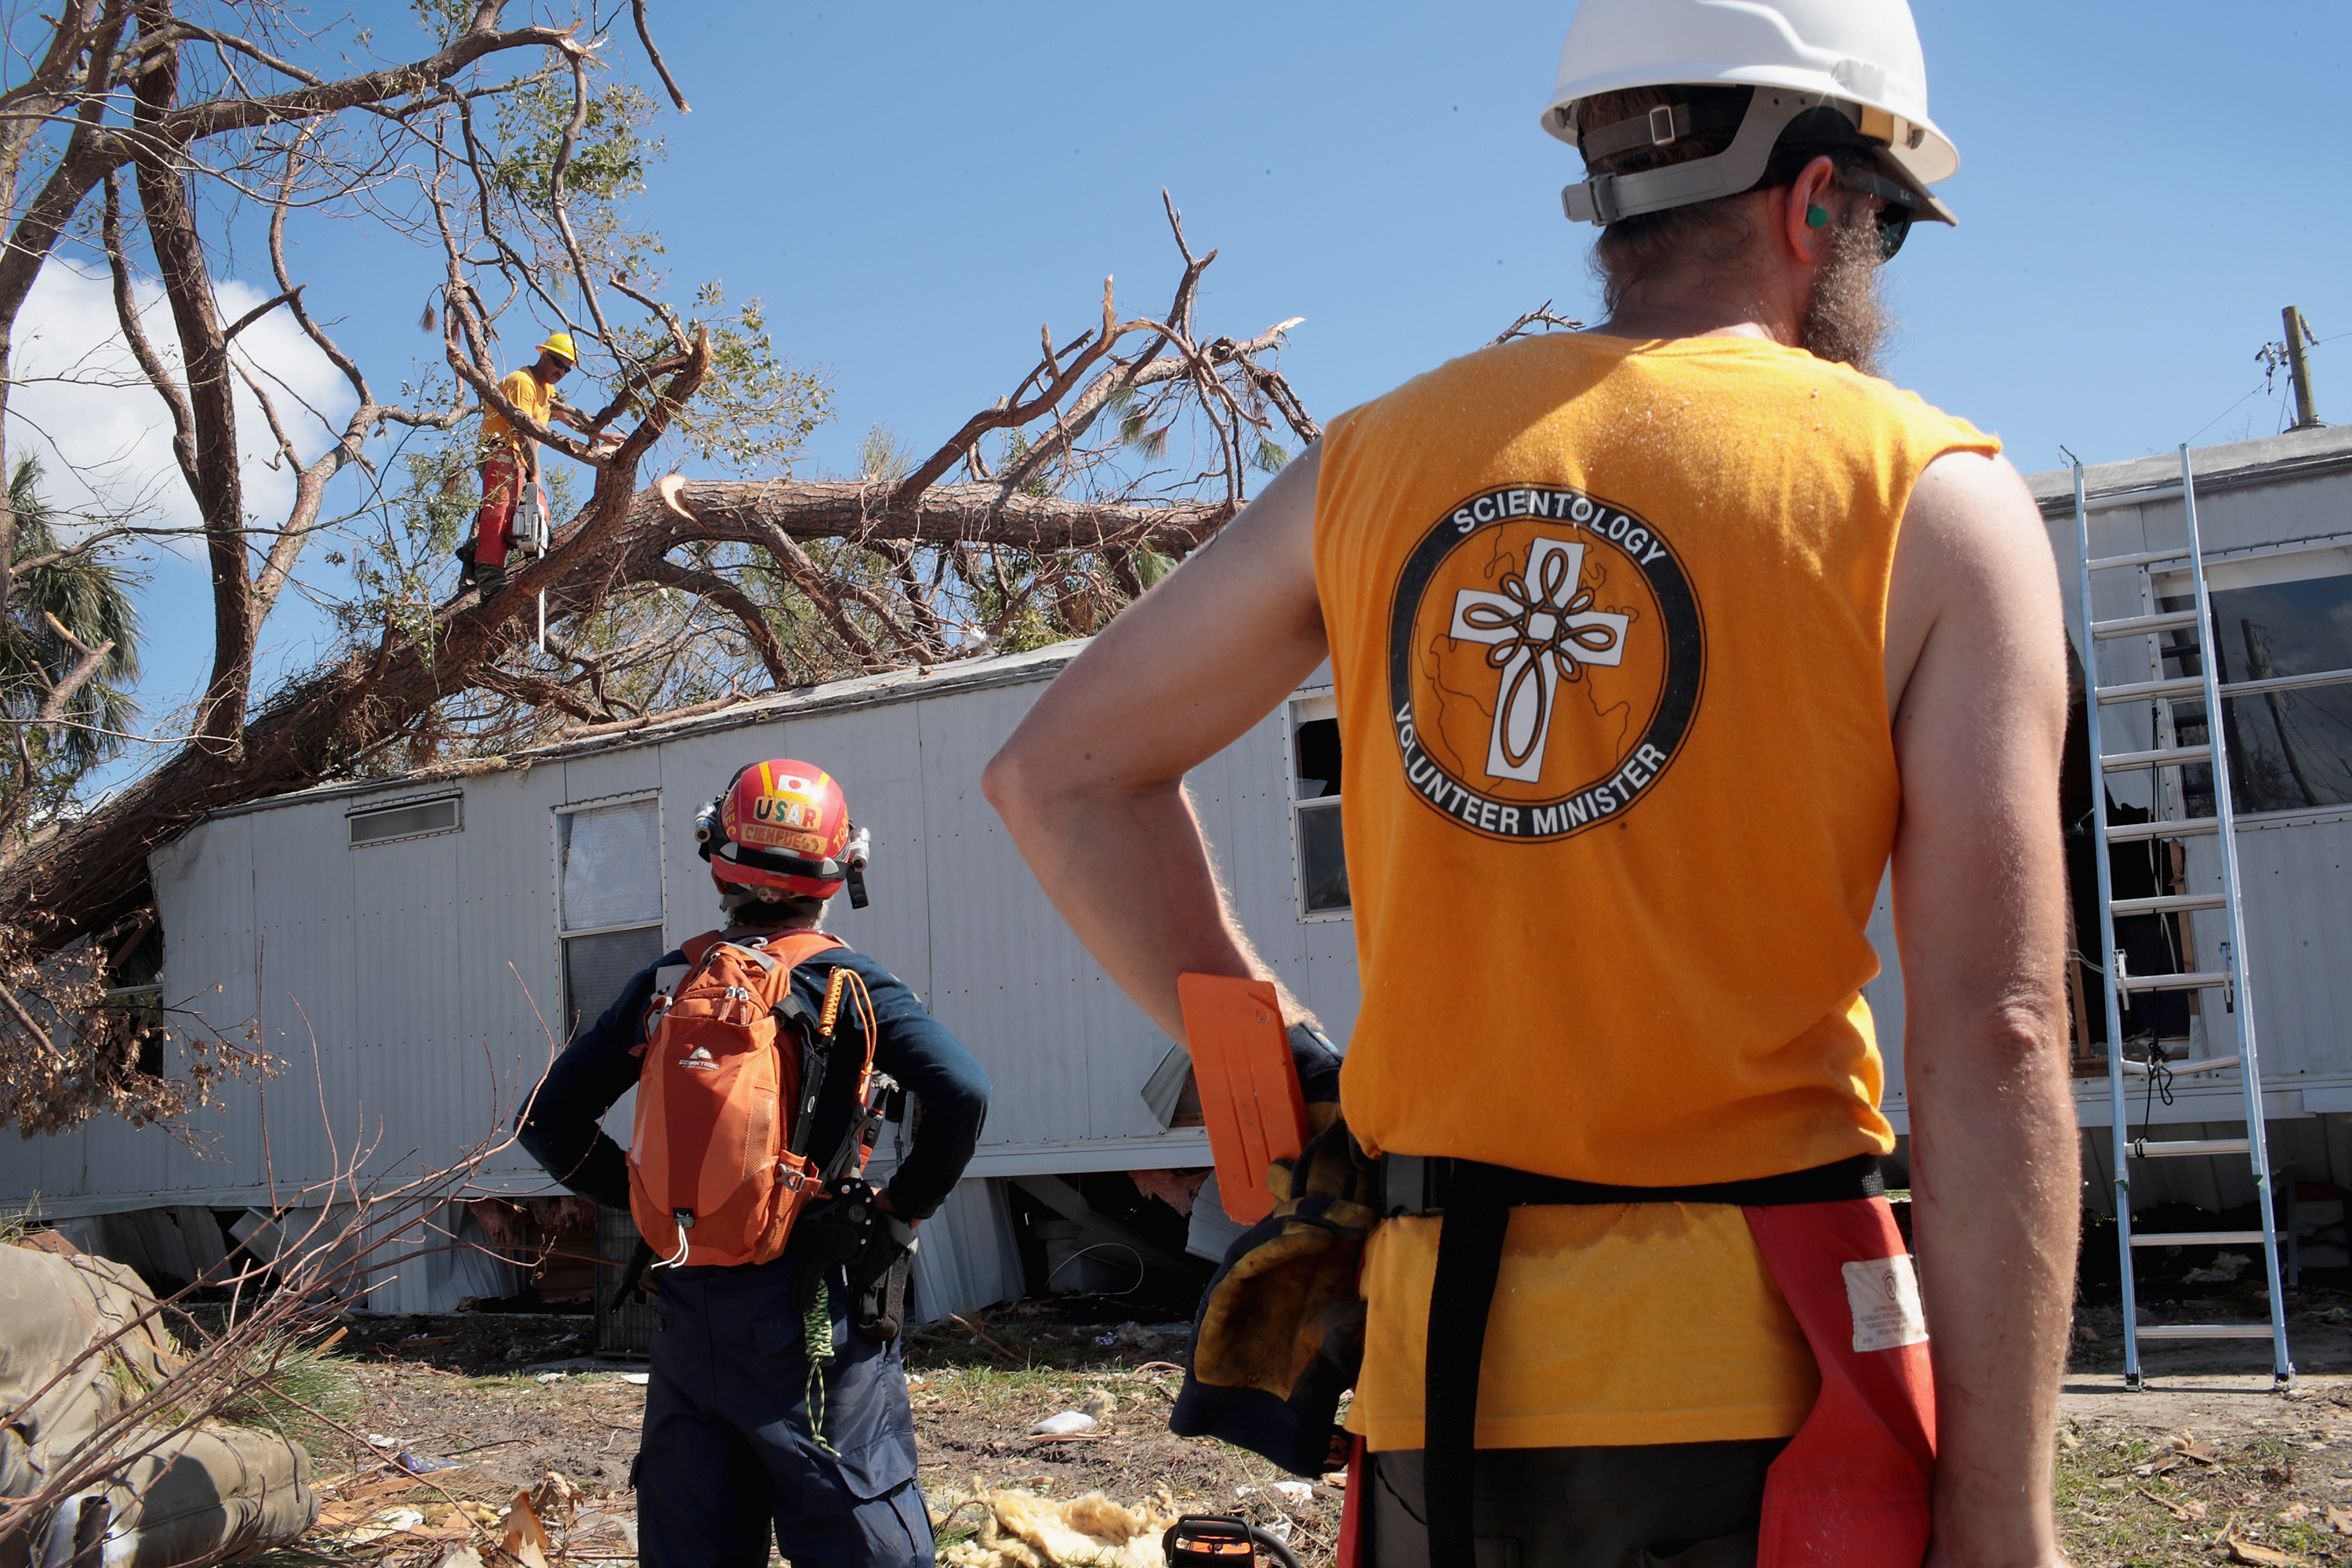 PANAMA CITY, FL - OCTOBER 20: Volunteers from the Scientology Volunteer Ministers help to clear debris left by Hurricane Michael at the severely-damaged Bay Oaks Village trailer park on October 20, 2018 in Panama City, Florida. (Photo by Scott Olson/Getty Images)